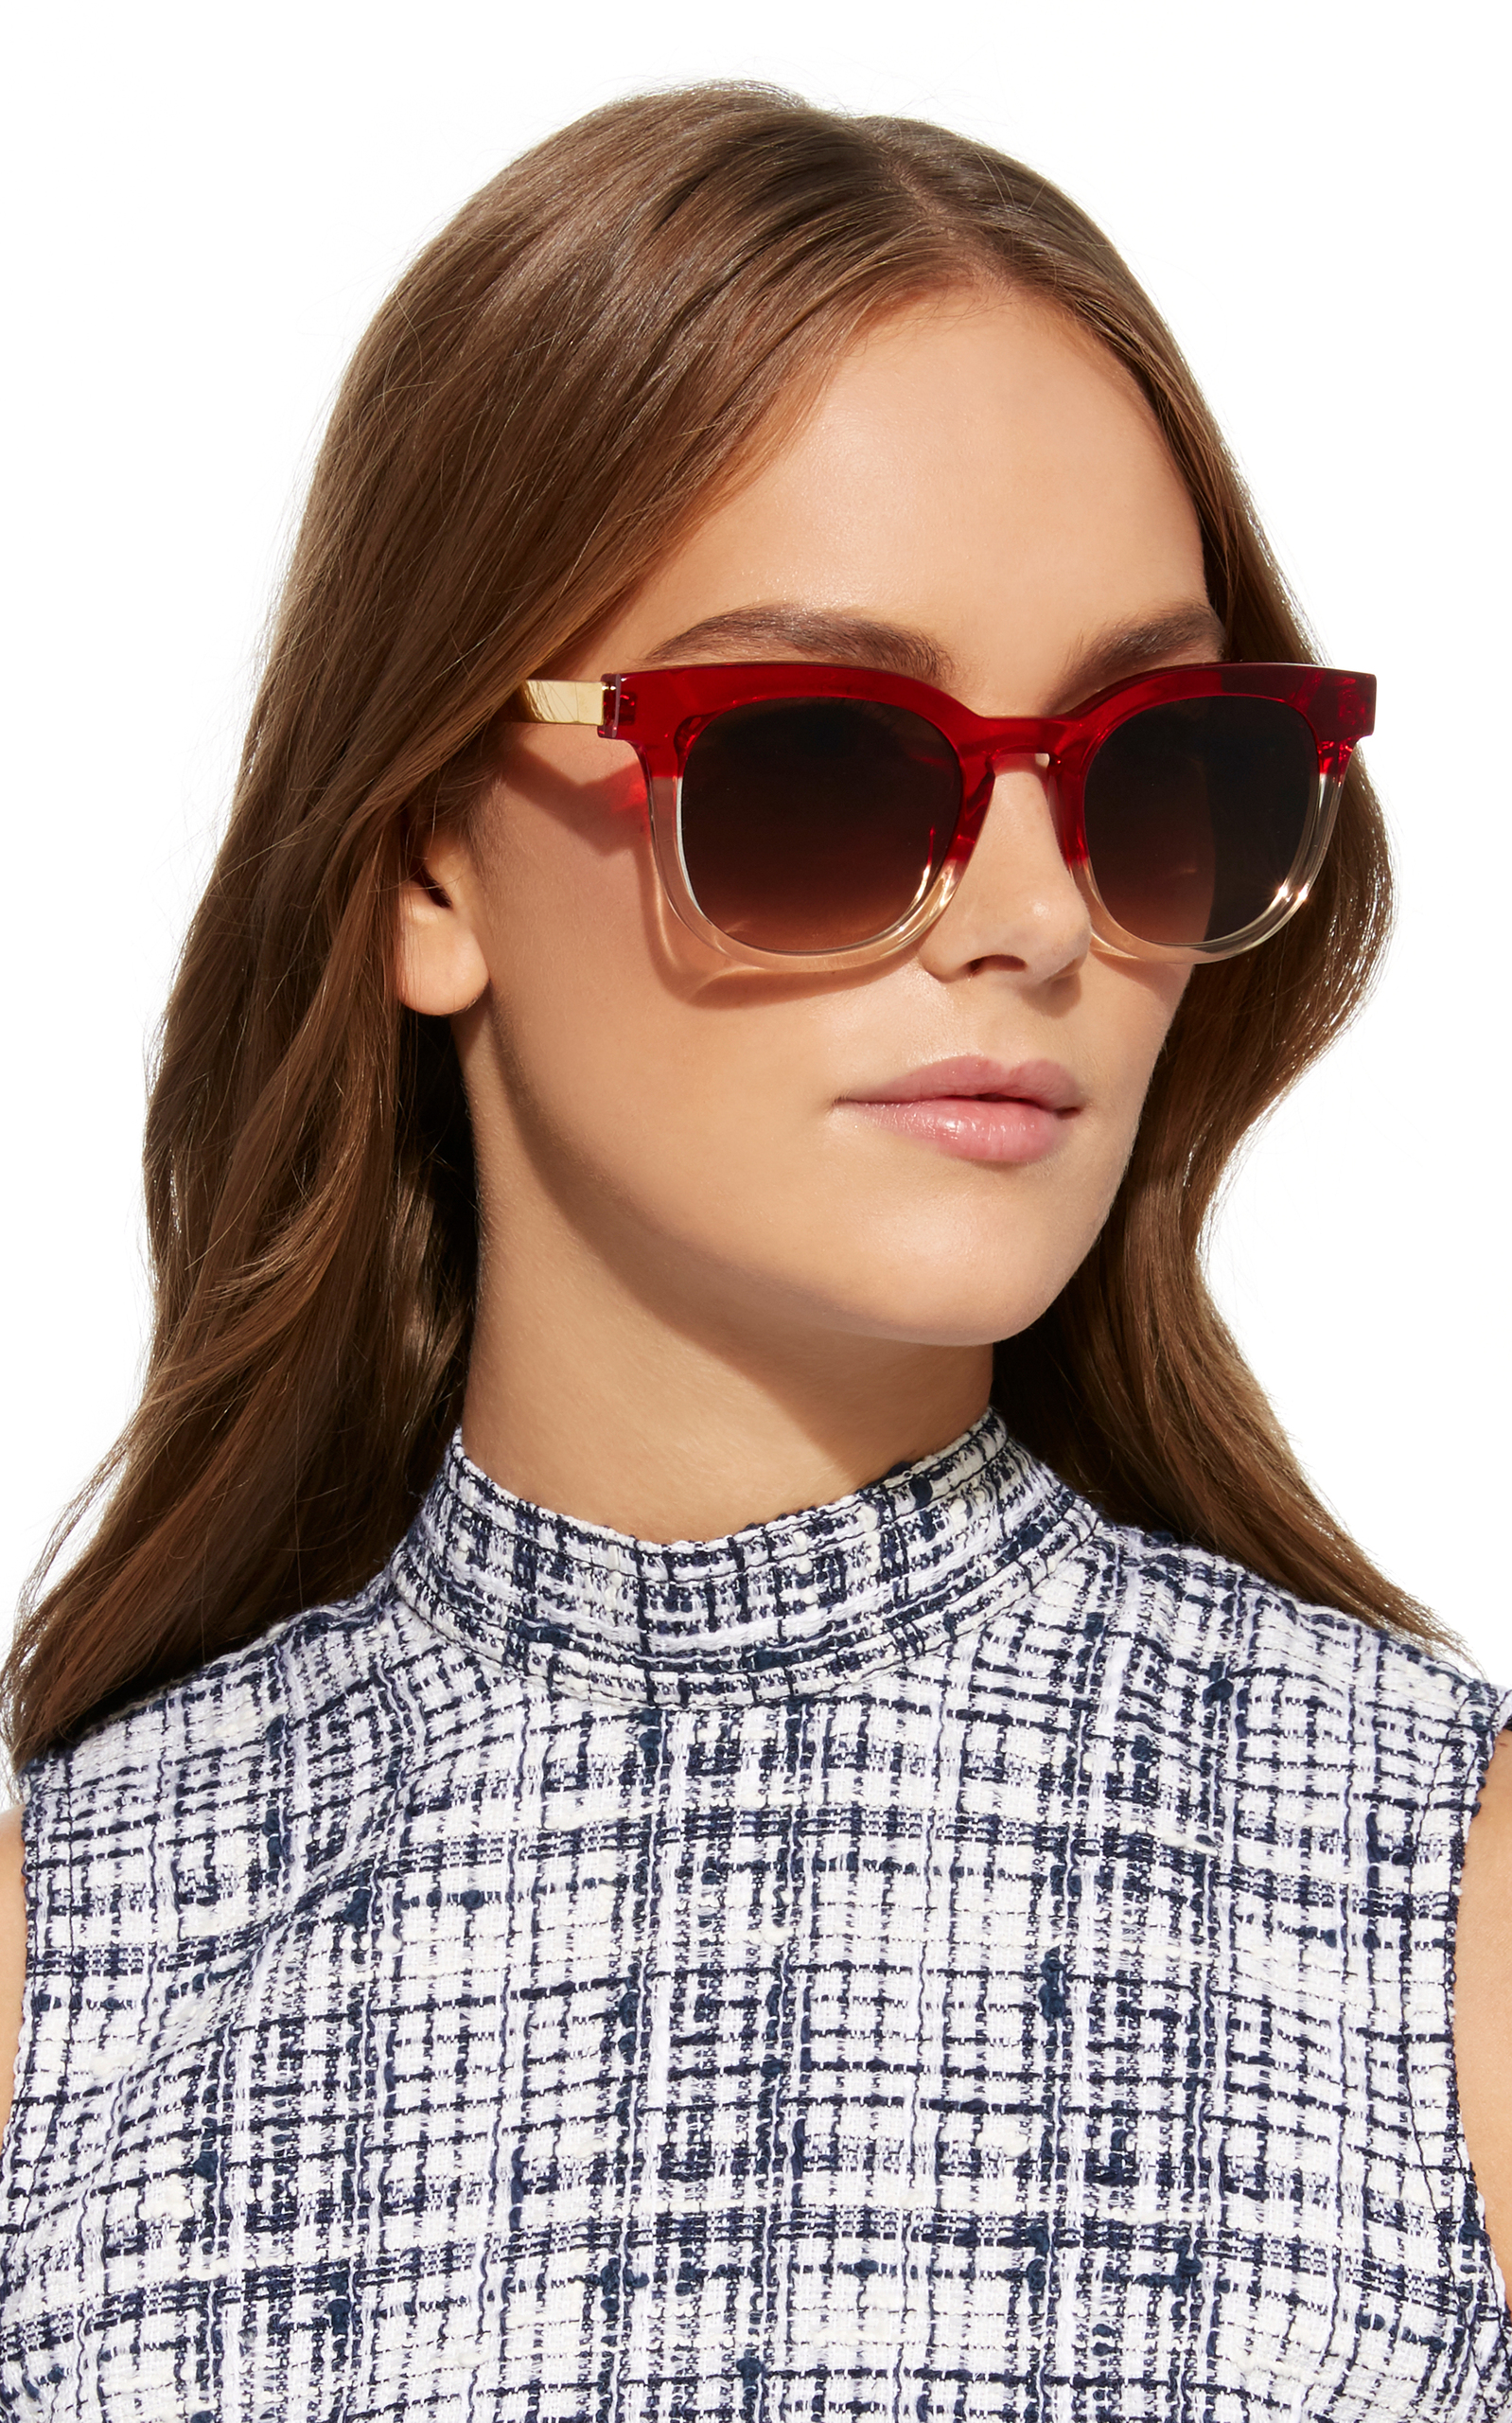 Penalty Champagne-Red Tone Acetate Sunglasses Thierry Lasry It03hY